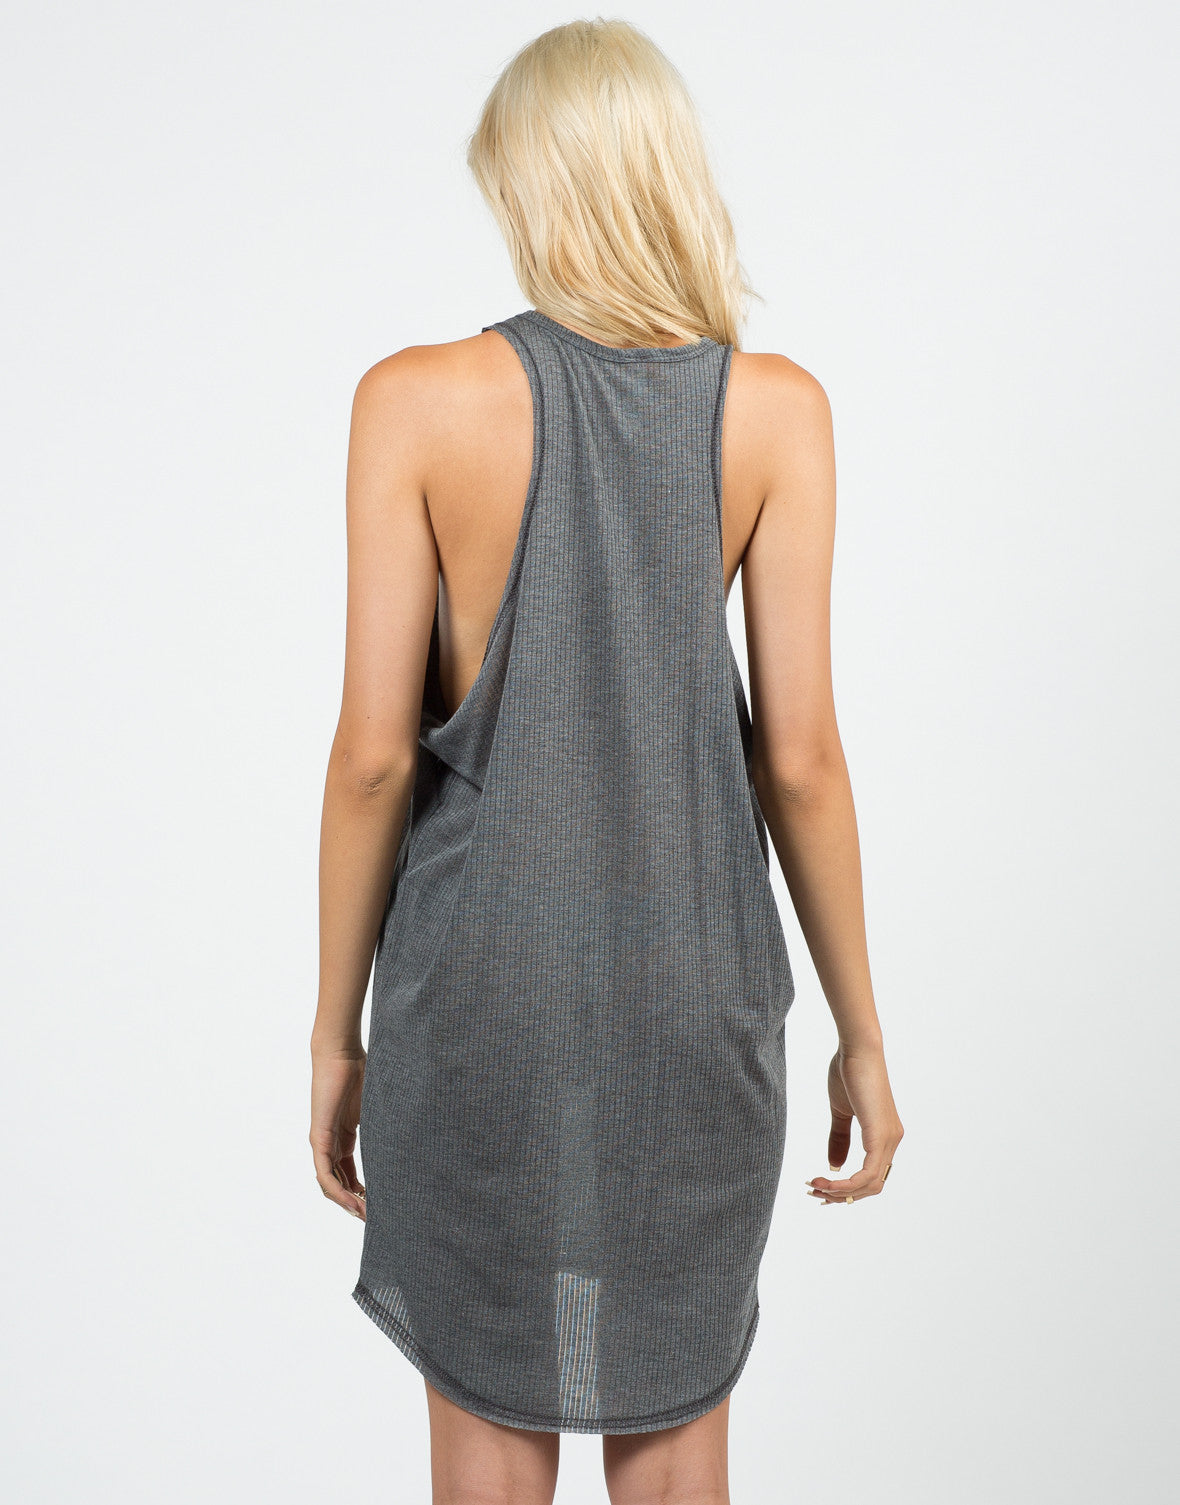 Back View of Ribbed Knitted Open Sides Dress